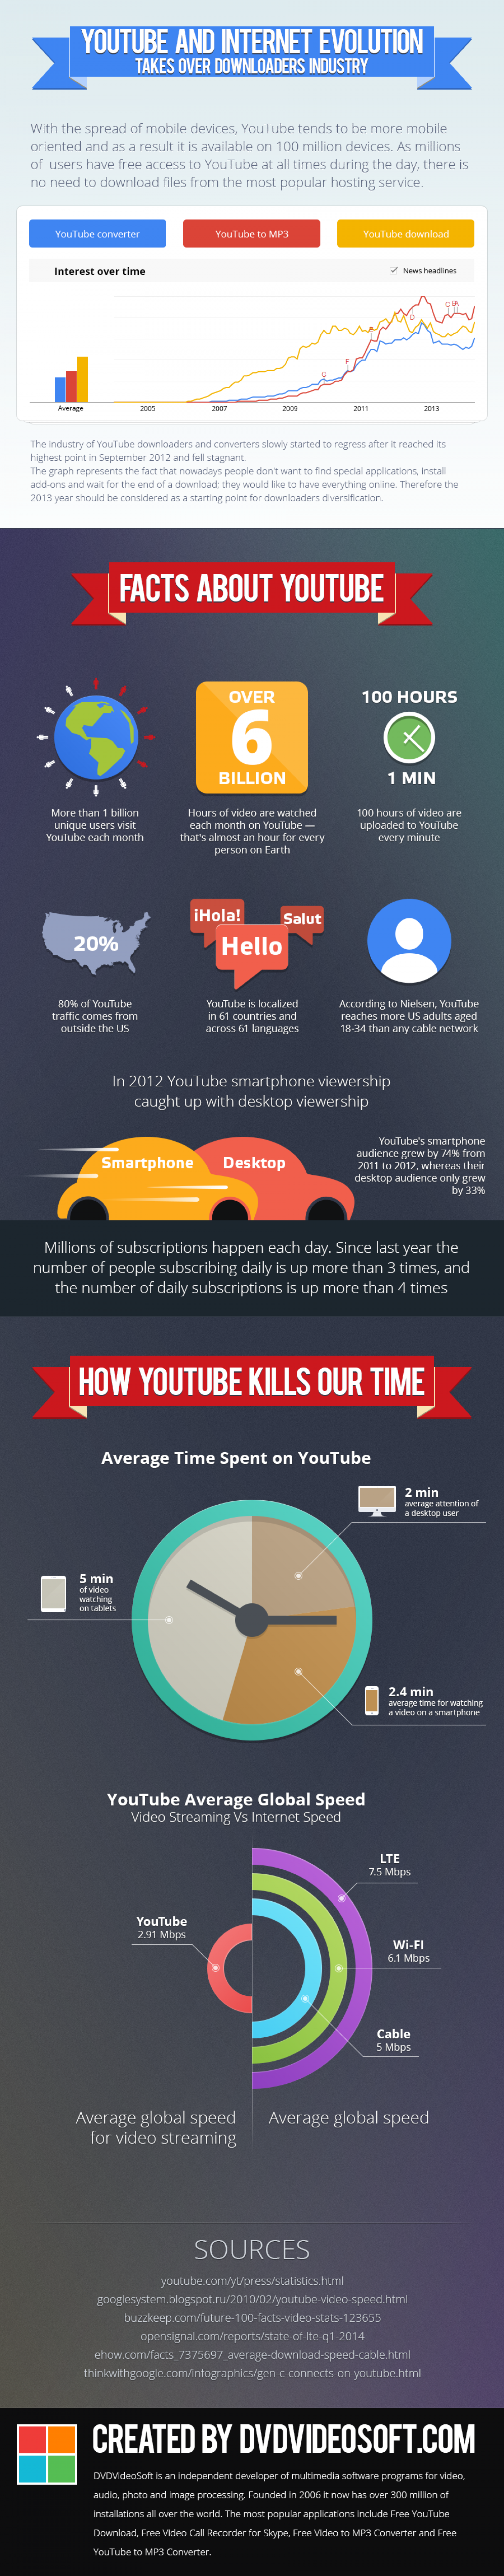 YouTube and Internet Evolution Takes over Downloaders Industry  Infographic